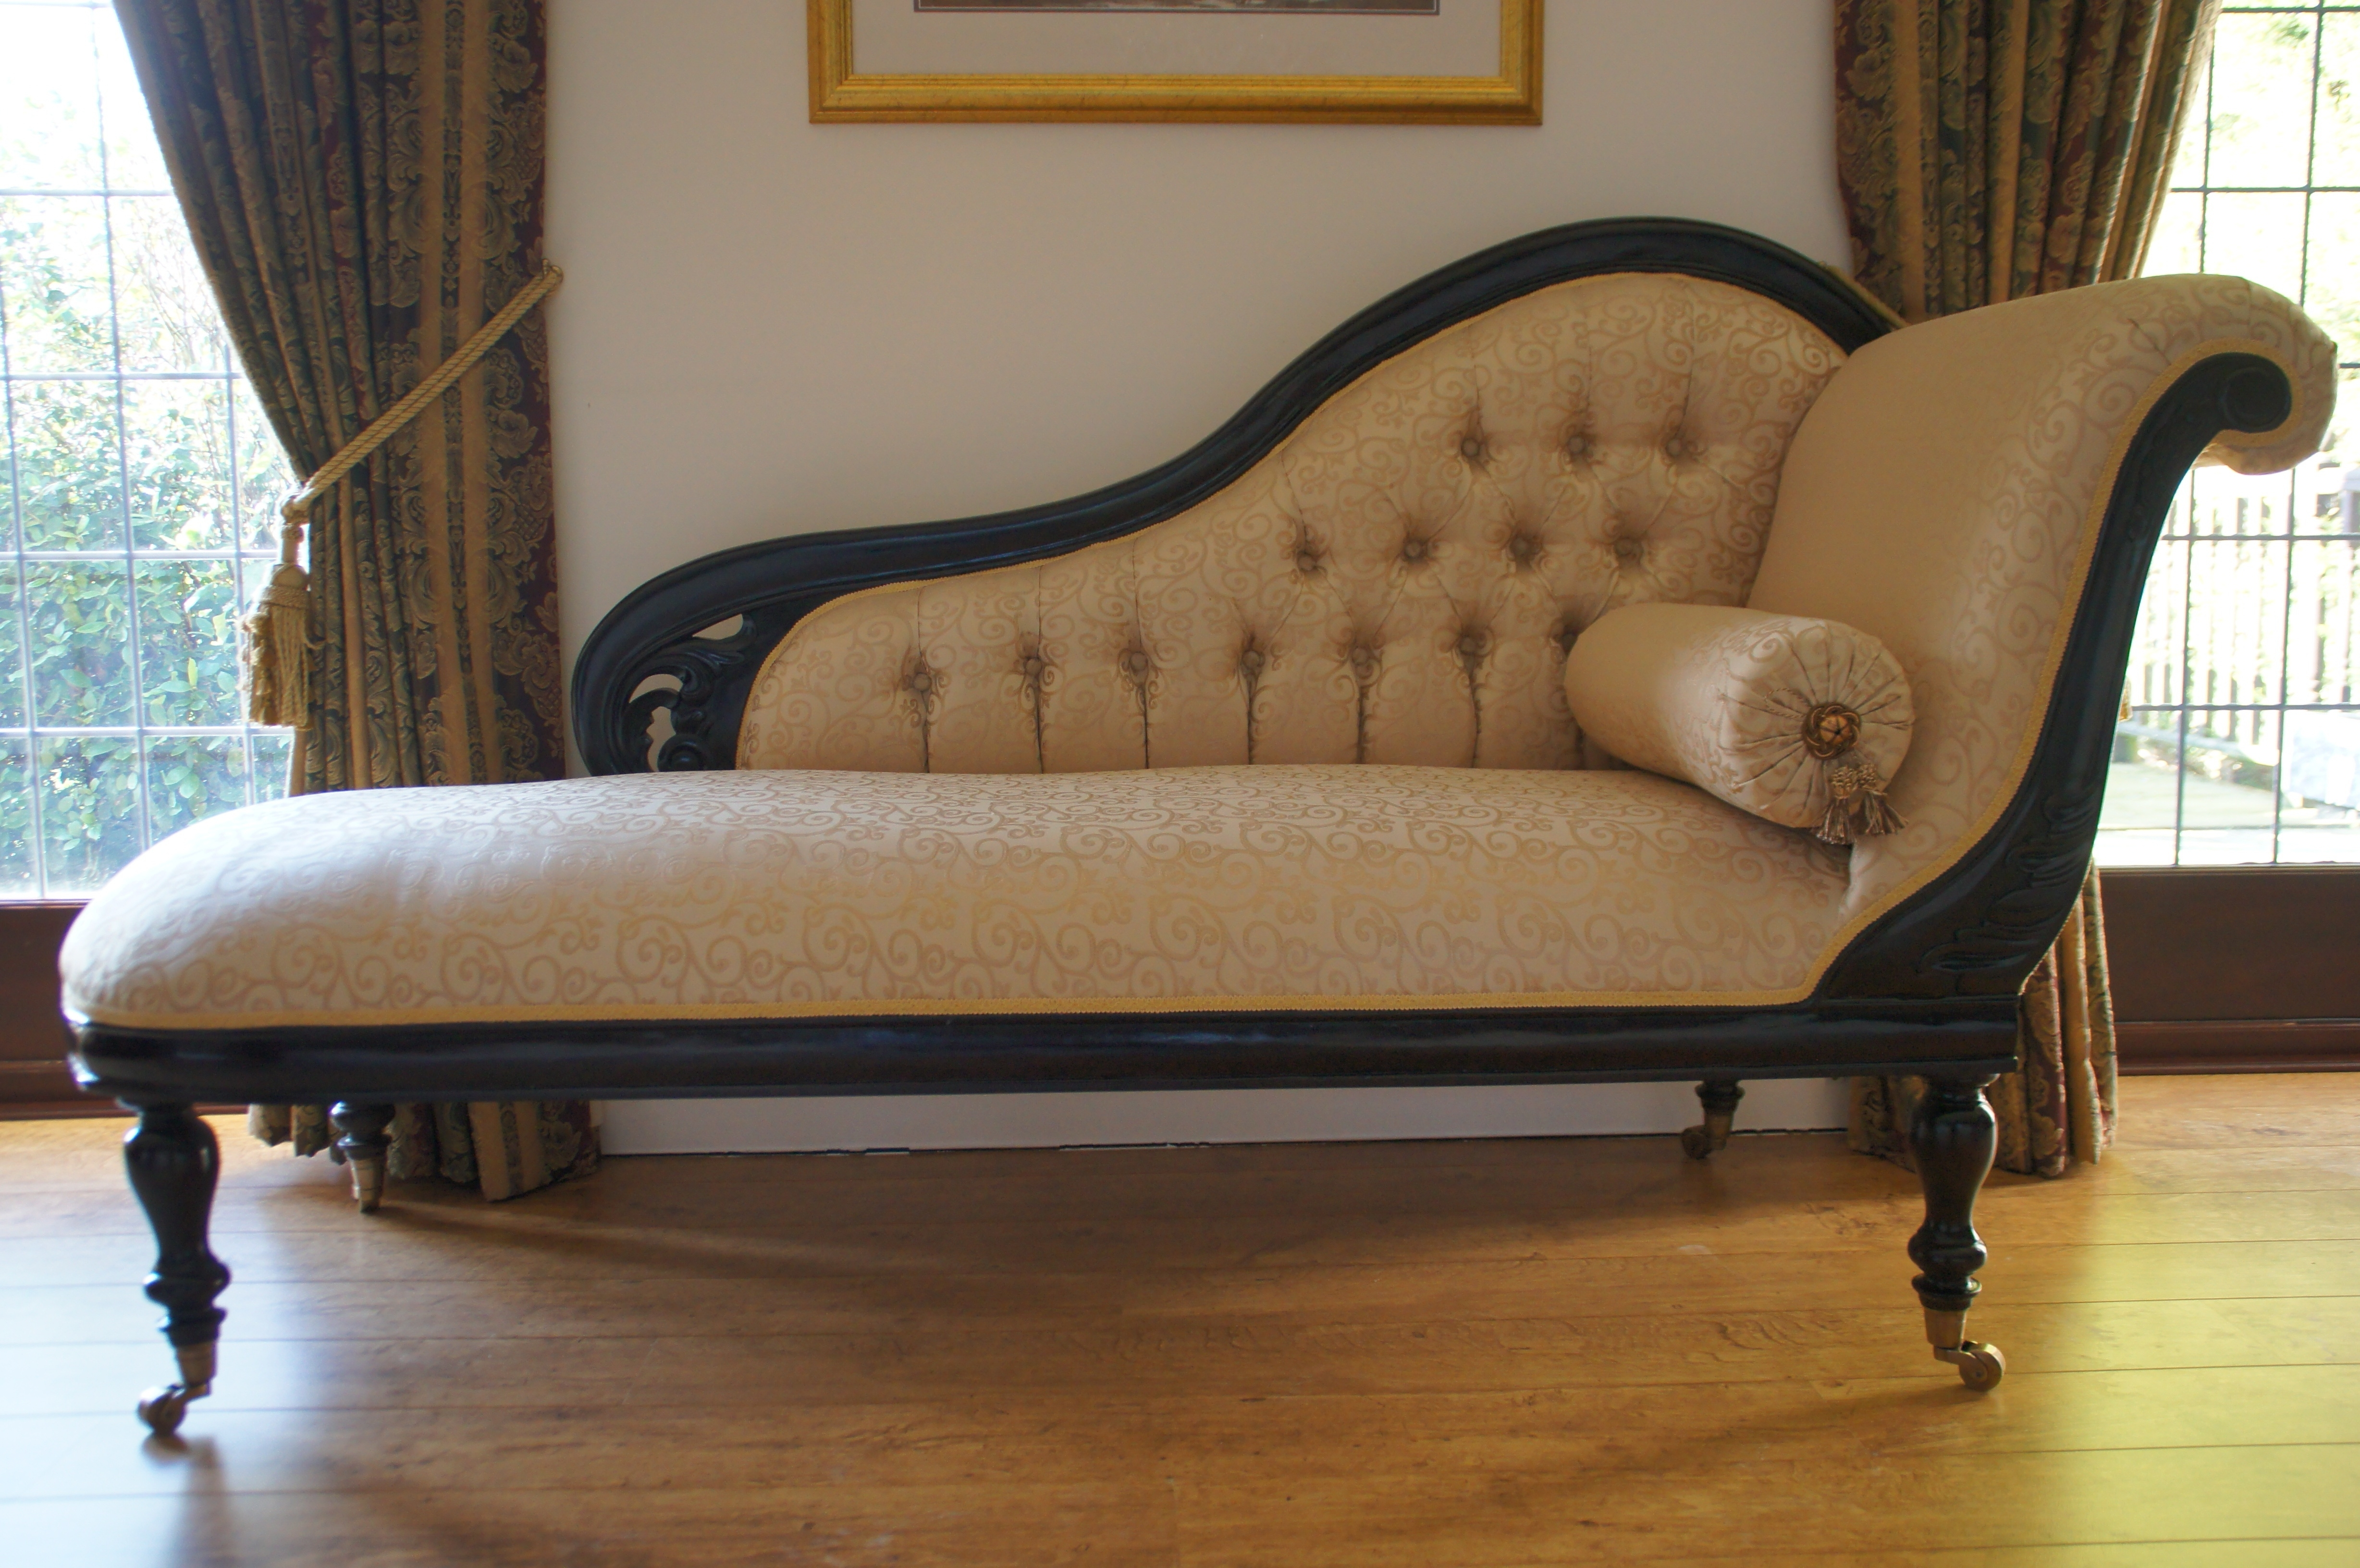 Fashionable Vintage White Leather Victorian Chaise Lounge Sofa With Black In Victorian Chaise Lounge Chairs (View 5 of 15)